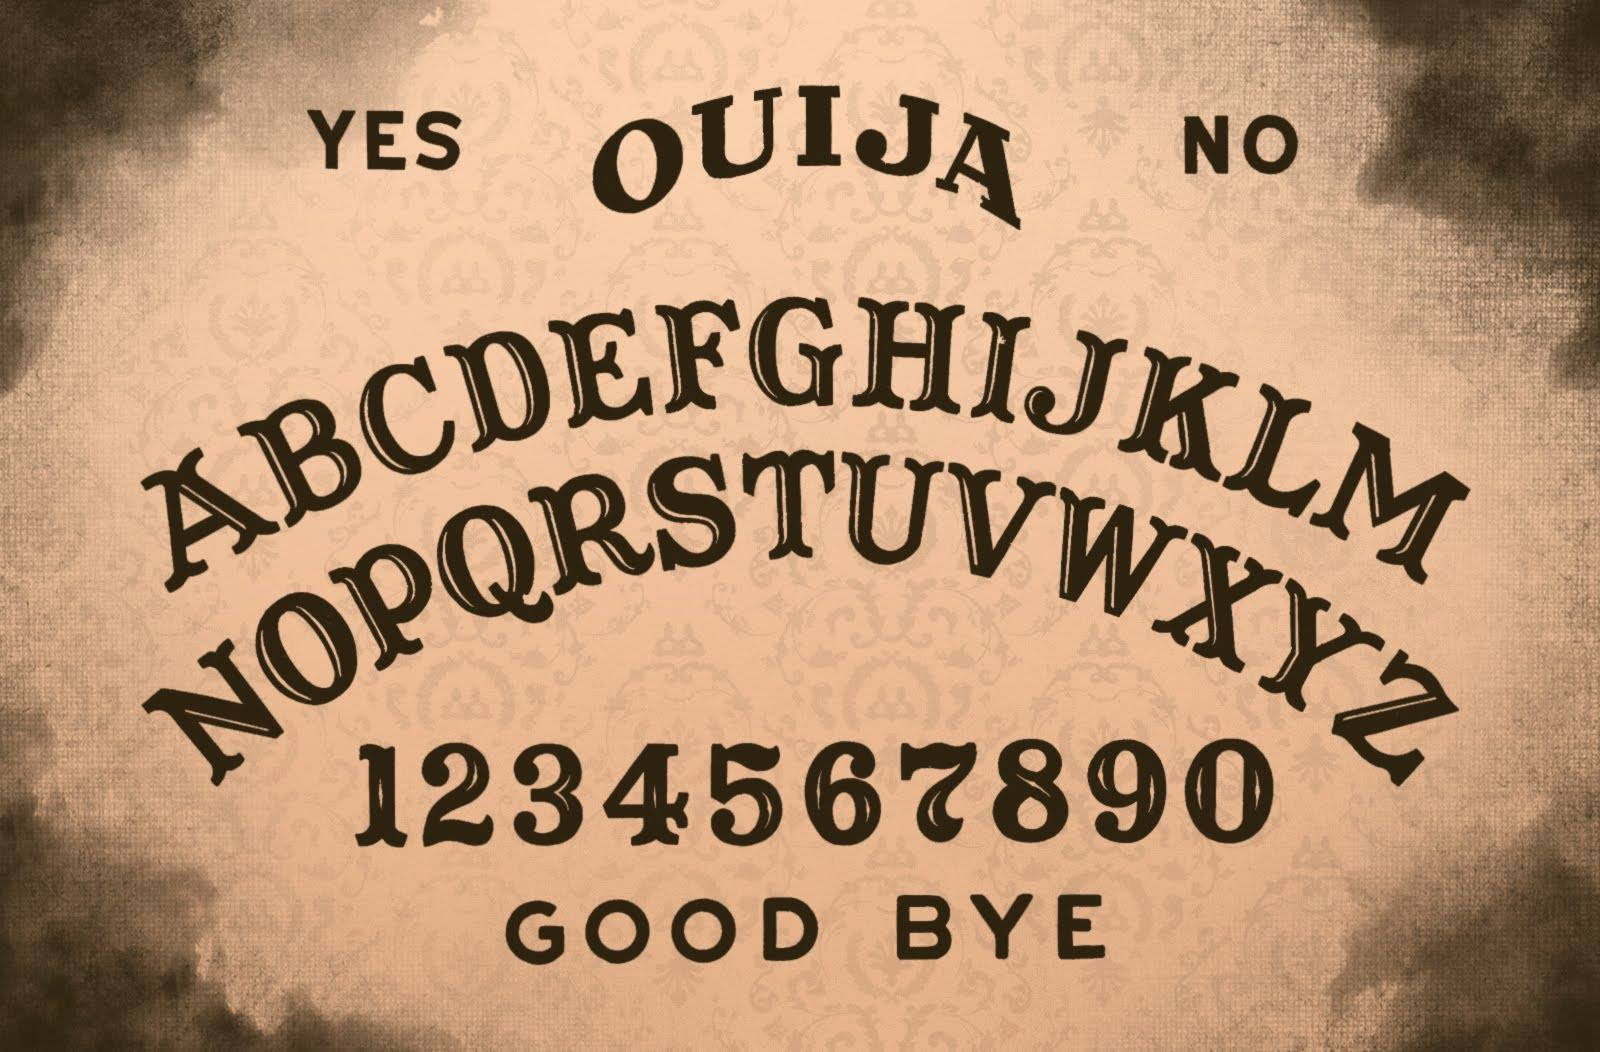 Tavola ouija tutto vero o solo suggestione close up engineering - Tavola ouija storie vere ...